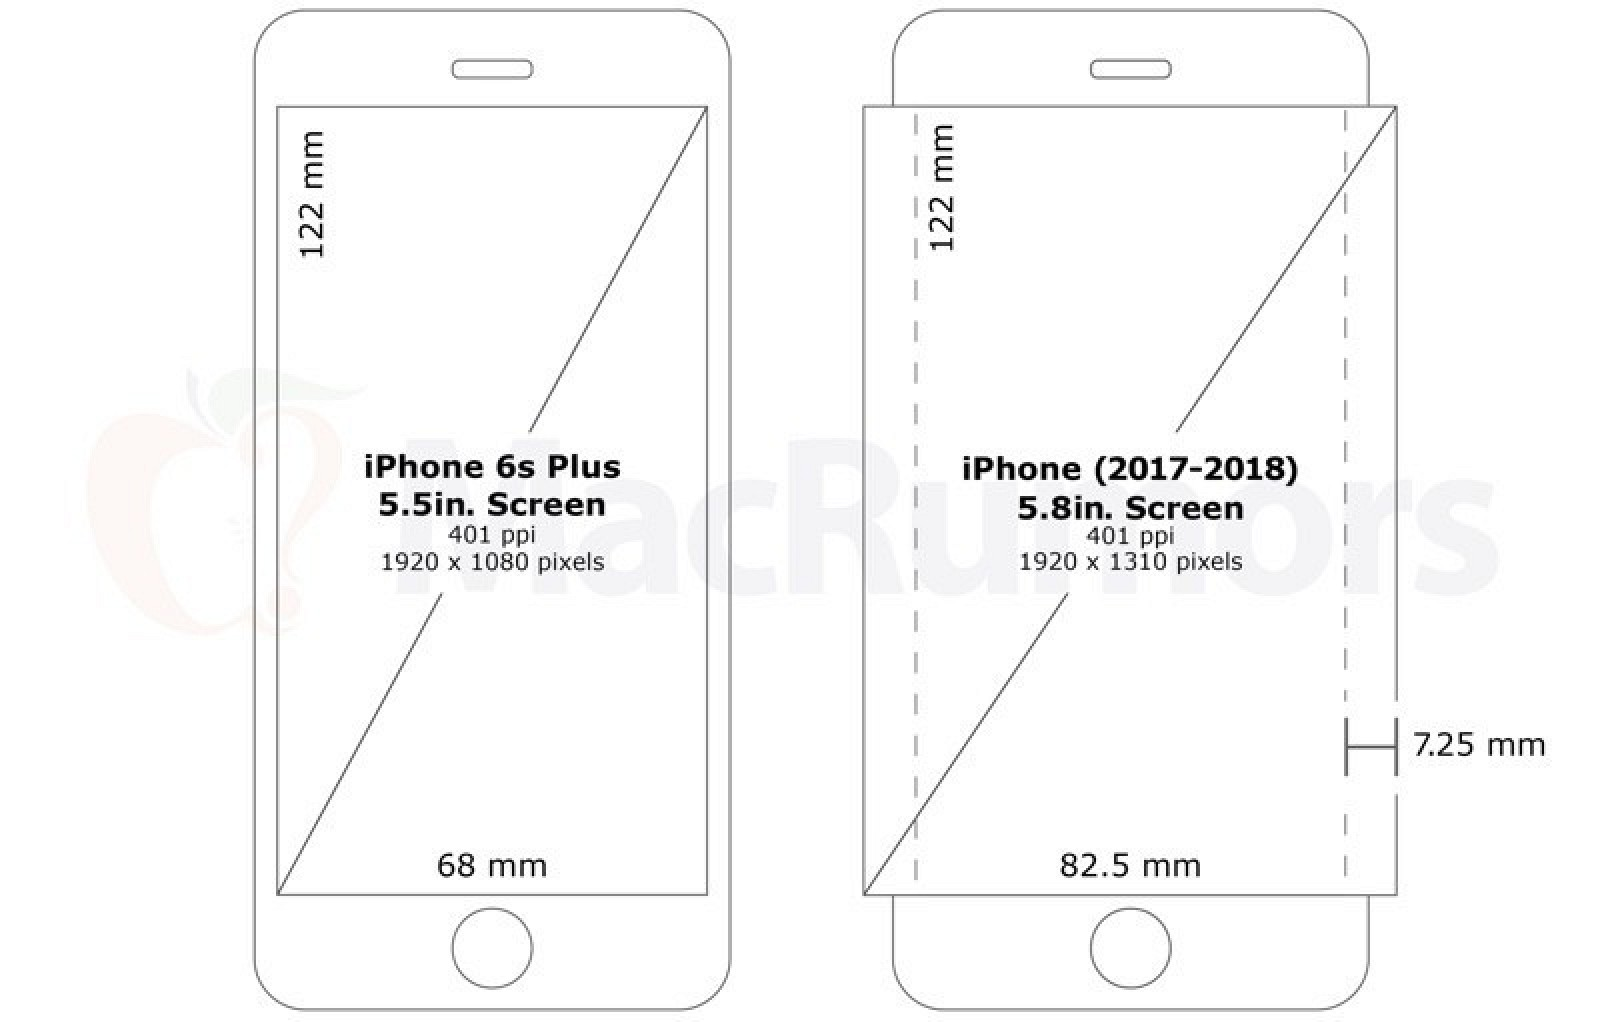 iphone 5 screen dimensions samsung again rumored to be exclusive supplier of 5 8 inch 9745